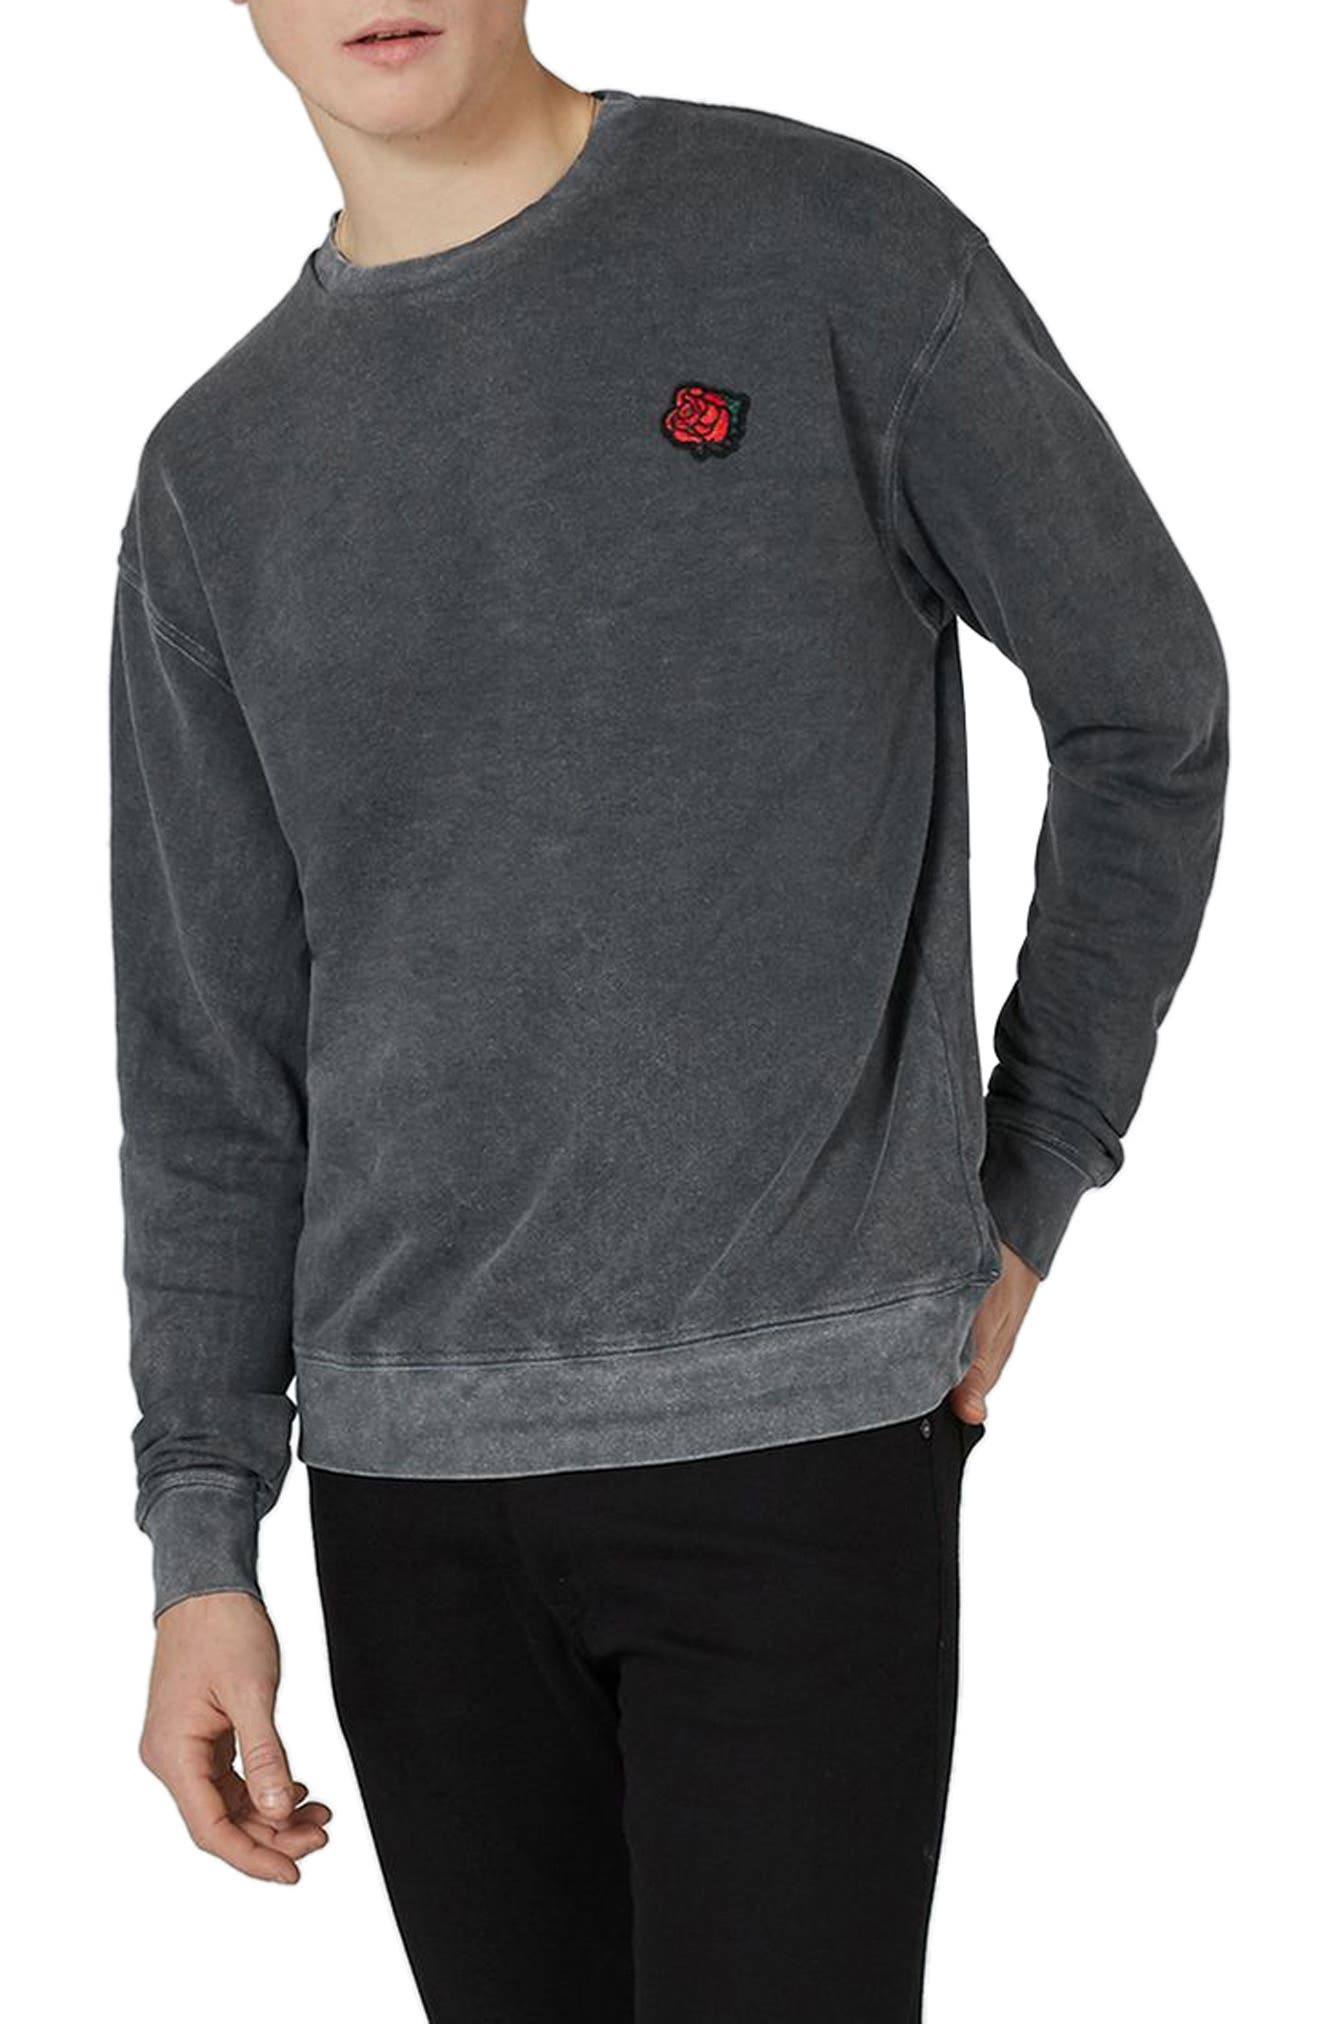 Percy Rose Embroidered Sweatshirt,                         Main,                         color,